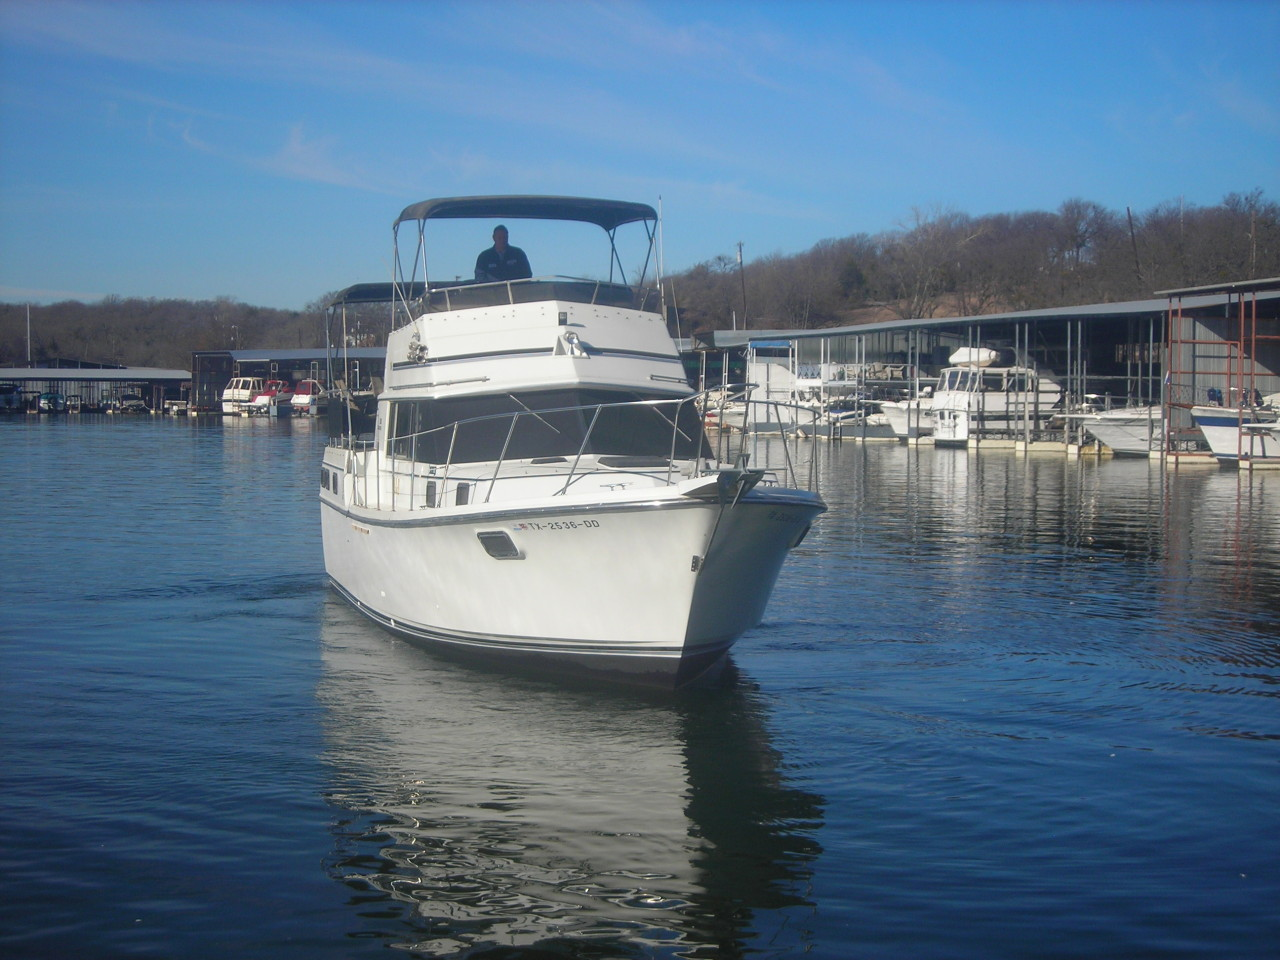 http://eisenhoweryachtclub.com/wp-content/uploads/new-boat-pictures-008.jpg